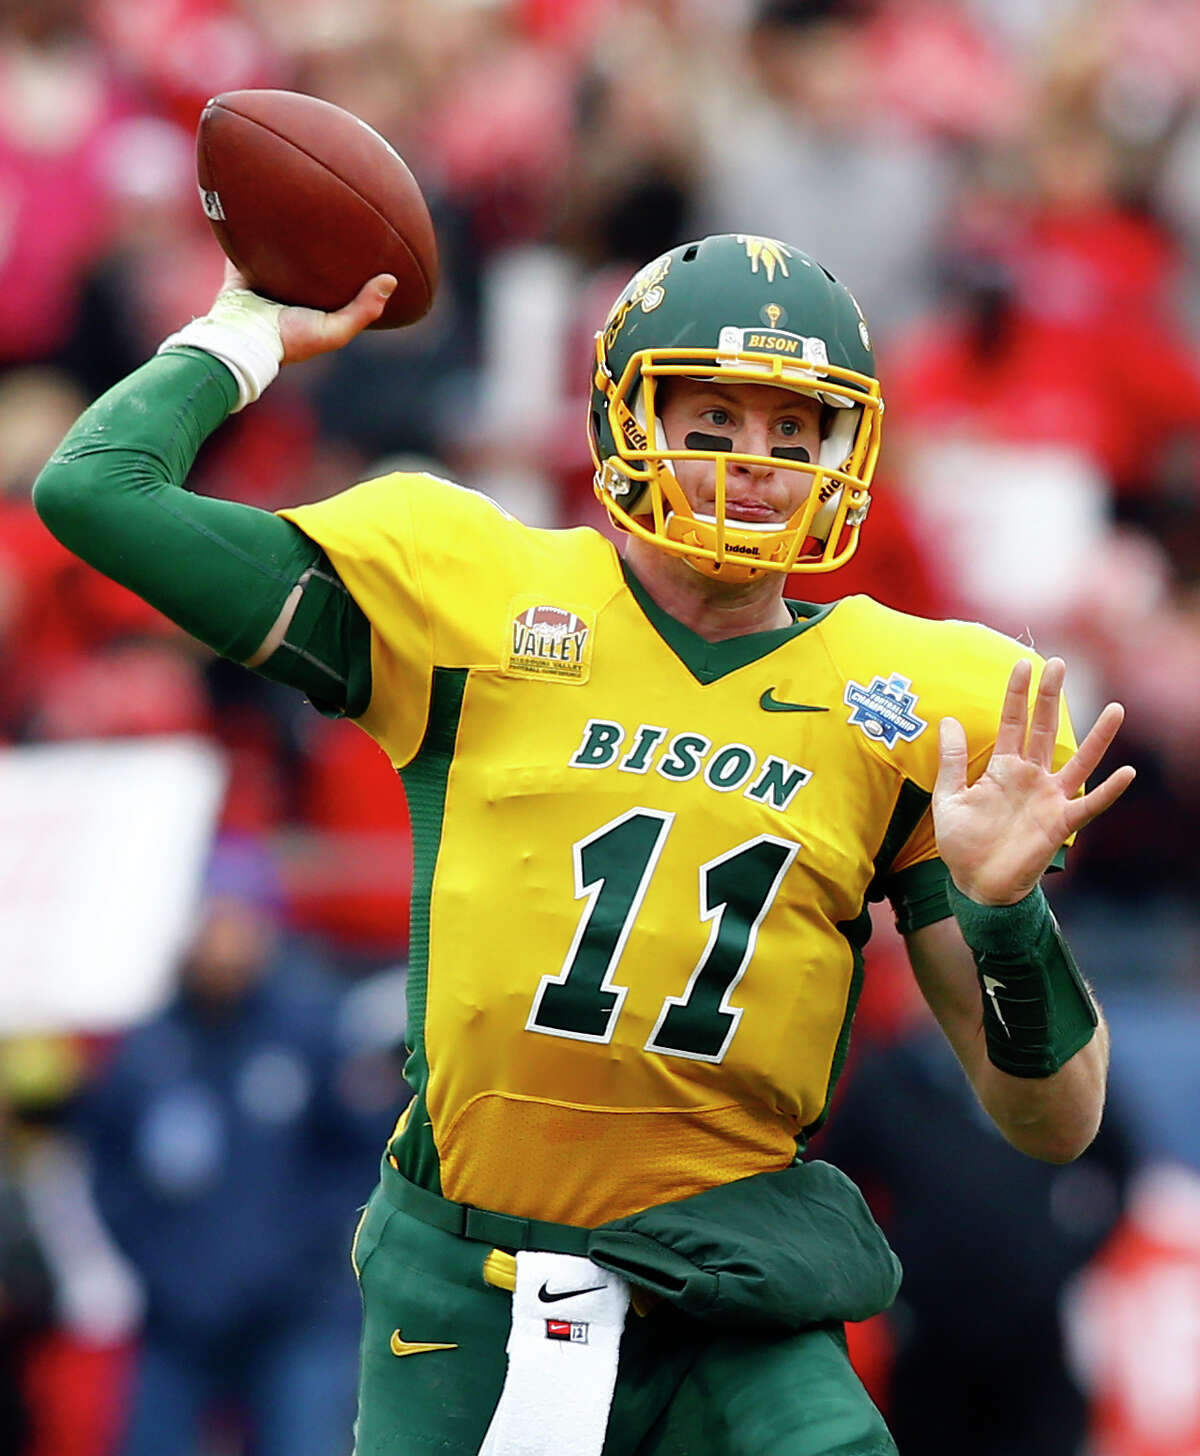 Carson Wentz, North Dakota State  Height/weight: 6-5, 237 40-yard dash: 4.65 He has the size, arm, athleticism and intelligence that scouts love, but he played against FCS competition. He took snaps under center as well as from the shotgun. He started for two championship teams, including last season when he returned from a broken wrist. Impressive in the Senior Bowl, combine and pro day. Could go first overall.